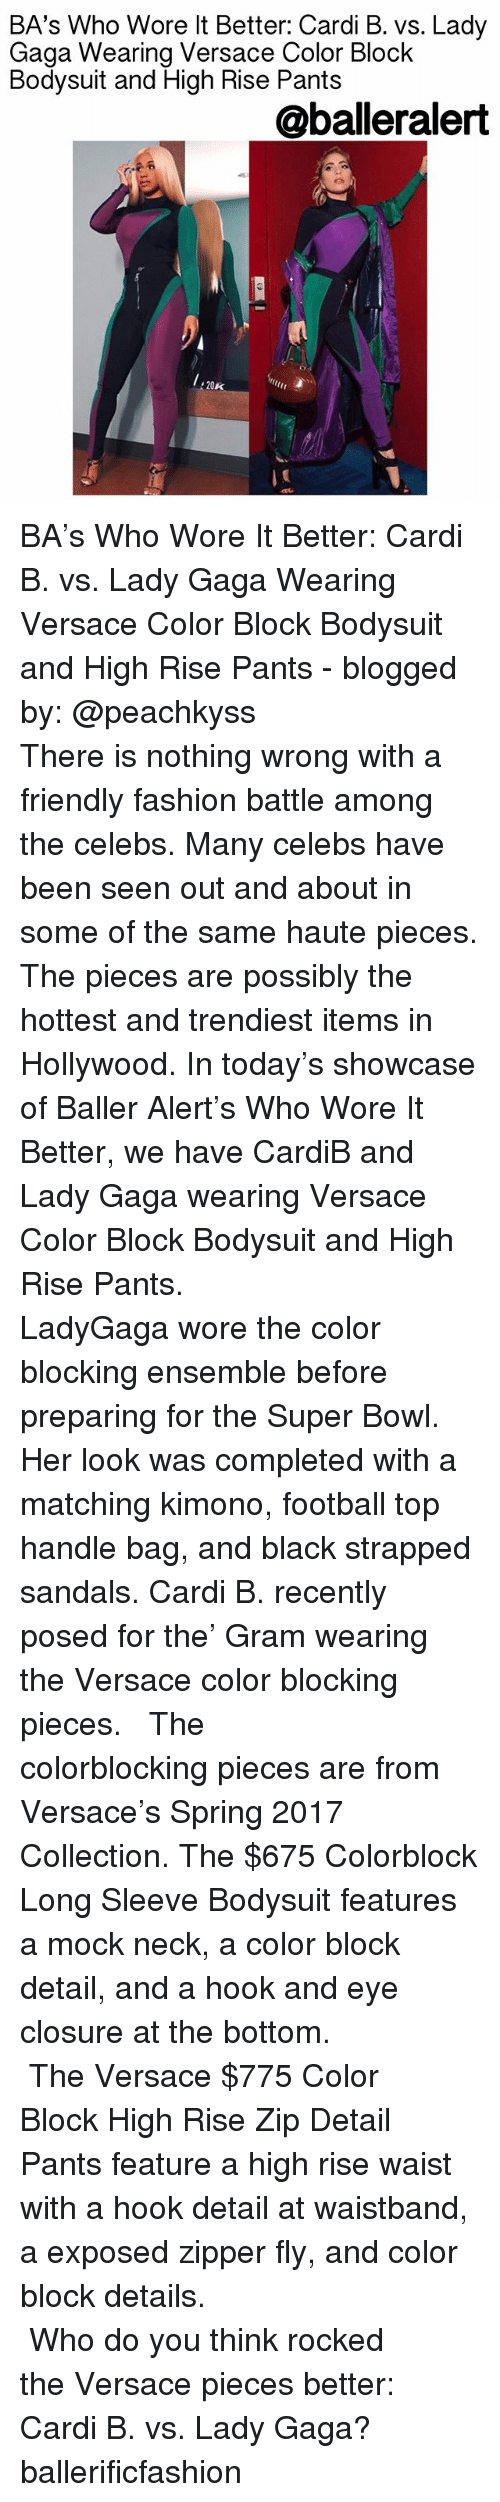 Versace: BA's Who Wore lt Better: Cardi B. vs. Lady  Gaga Wearina Versace Color Block  Bodysuit and High Rise Pants  @balleralert  20K BA's Who Wore It Better: Cardi B. vs. Lady Gaga Wearing Versace Color Block Bodysuit and High Rise Pants - blogged by: @peachkyss ⠀⠀⠀⠀⠀⠀⠀⠀⠀ ⠀⠀⠀⠀⠀⠀⠀⠀⠀ There is nothing wrong with a friendly fashion battle among the celebs. Many celebs have been seen out and about in some of the same haute pieces. The pieces are possibly the hottest and trendiest items in Hollywood. In today's showcase of Baller Alert's Who Wore It Better, we have CardiB and Lady Gaga wearing Versace Color Block Bodysuit and High Rise Pants. ⠀⠀⠀⠀⠀⠀⠀⠀⠀ ⠀⠀⠀⠀⠀⠀⠀⠀⠀ LadyGaga wore the color blocking ensemble before preparing for the Super Bowl. Her look was completed with a matching kimono, football top handle bag, and black strapped sandals. Cardi B. recently posed for the' Gram wearing the Versace color blocking pieces. ⠀⠀⠀⠀⠀⠀⠀⠀⠀ ⠀⠀⠀⠀⠀⠀⠀⠀⠀ The colorblocking pieces are from Versace's Spring 2017 Collection. The $675 Colorblock Long Sleeve Bodysuit features a mock neck, a color block detail, and a hook and eye closure at the bottom. ⠀⠀⠀⠀⠀⠀⠀⠀⠀ ⠀⠀⠀⠀⠀⠀⠀⠀⠀ The Versace $775 Color Block High Rise Zip Detail Pants feature a high rise waist with a hook detail at waistband, a exposed zipper fly, and color block details. ⠀⠀⠀⠀⠀⠀⠀⠀⠀ ⠀⠀⠀⠀⠀⠀⠀⠀⠀ ⠀⠀⠀⠀⠀⠀⠀⠀⠀ ⠀⠀⠀⠀⠀⠀⠀⠀⠀ Who do you think rocked the Versace pieces better: Cardi B. vs. Lady Gaga? ballerificfashion